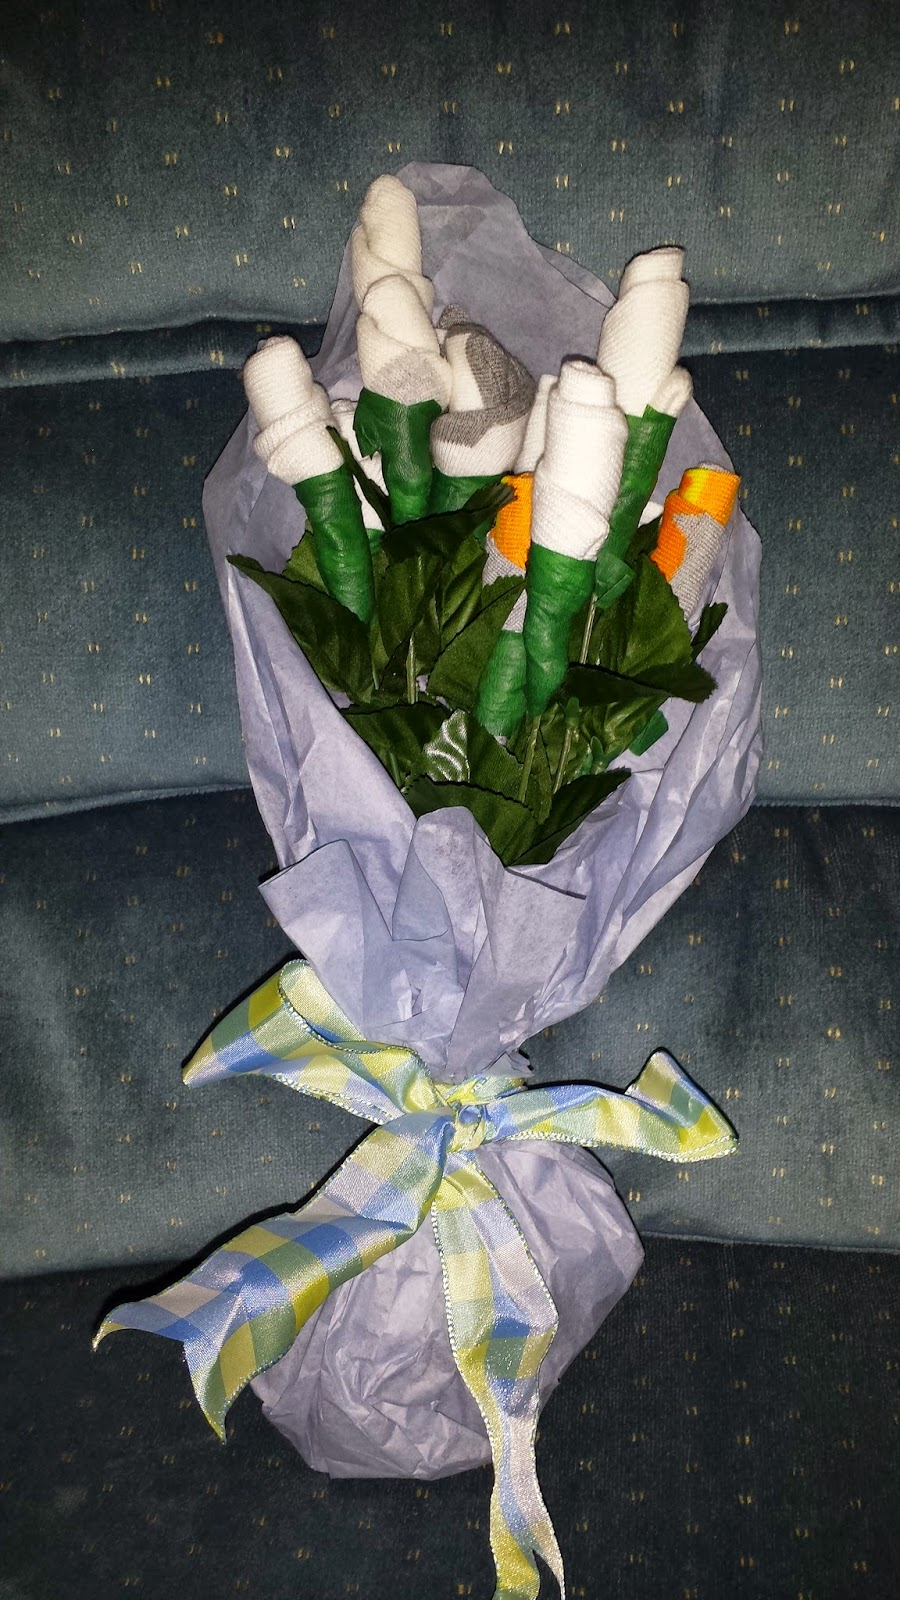 2 completed bouquets made from baby socks wrapped in tissue paper and tied with ribbon